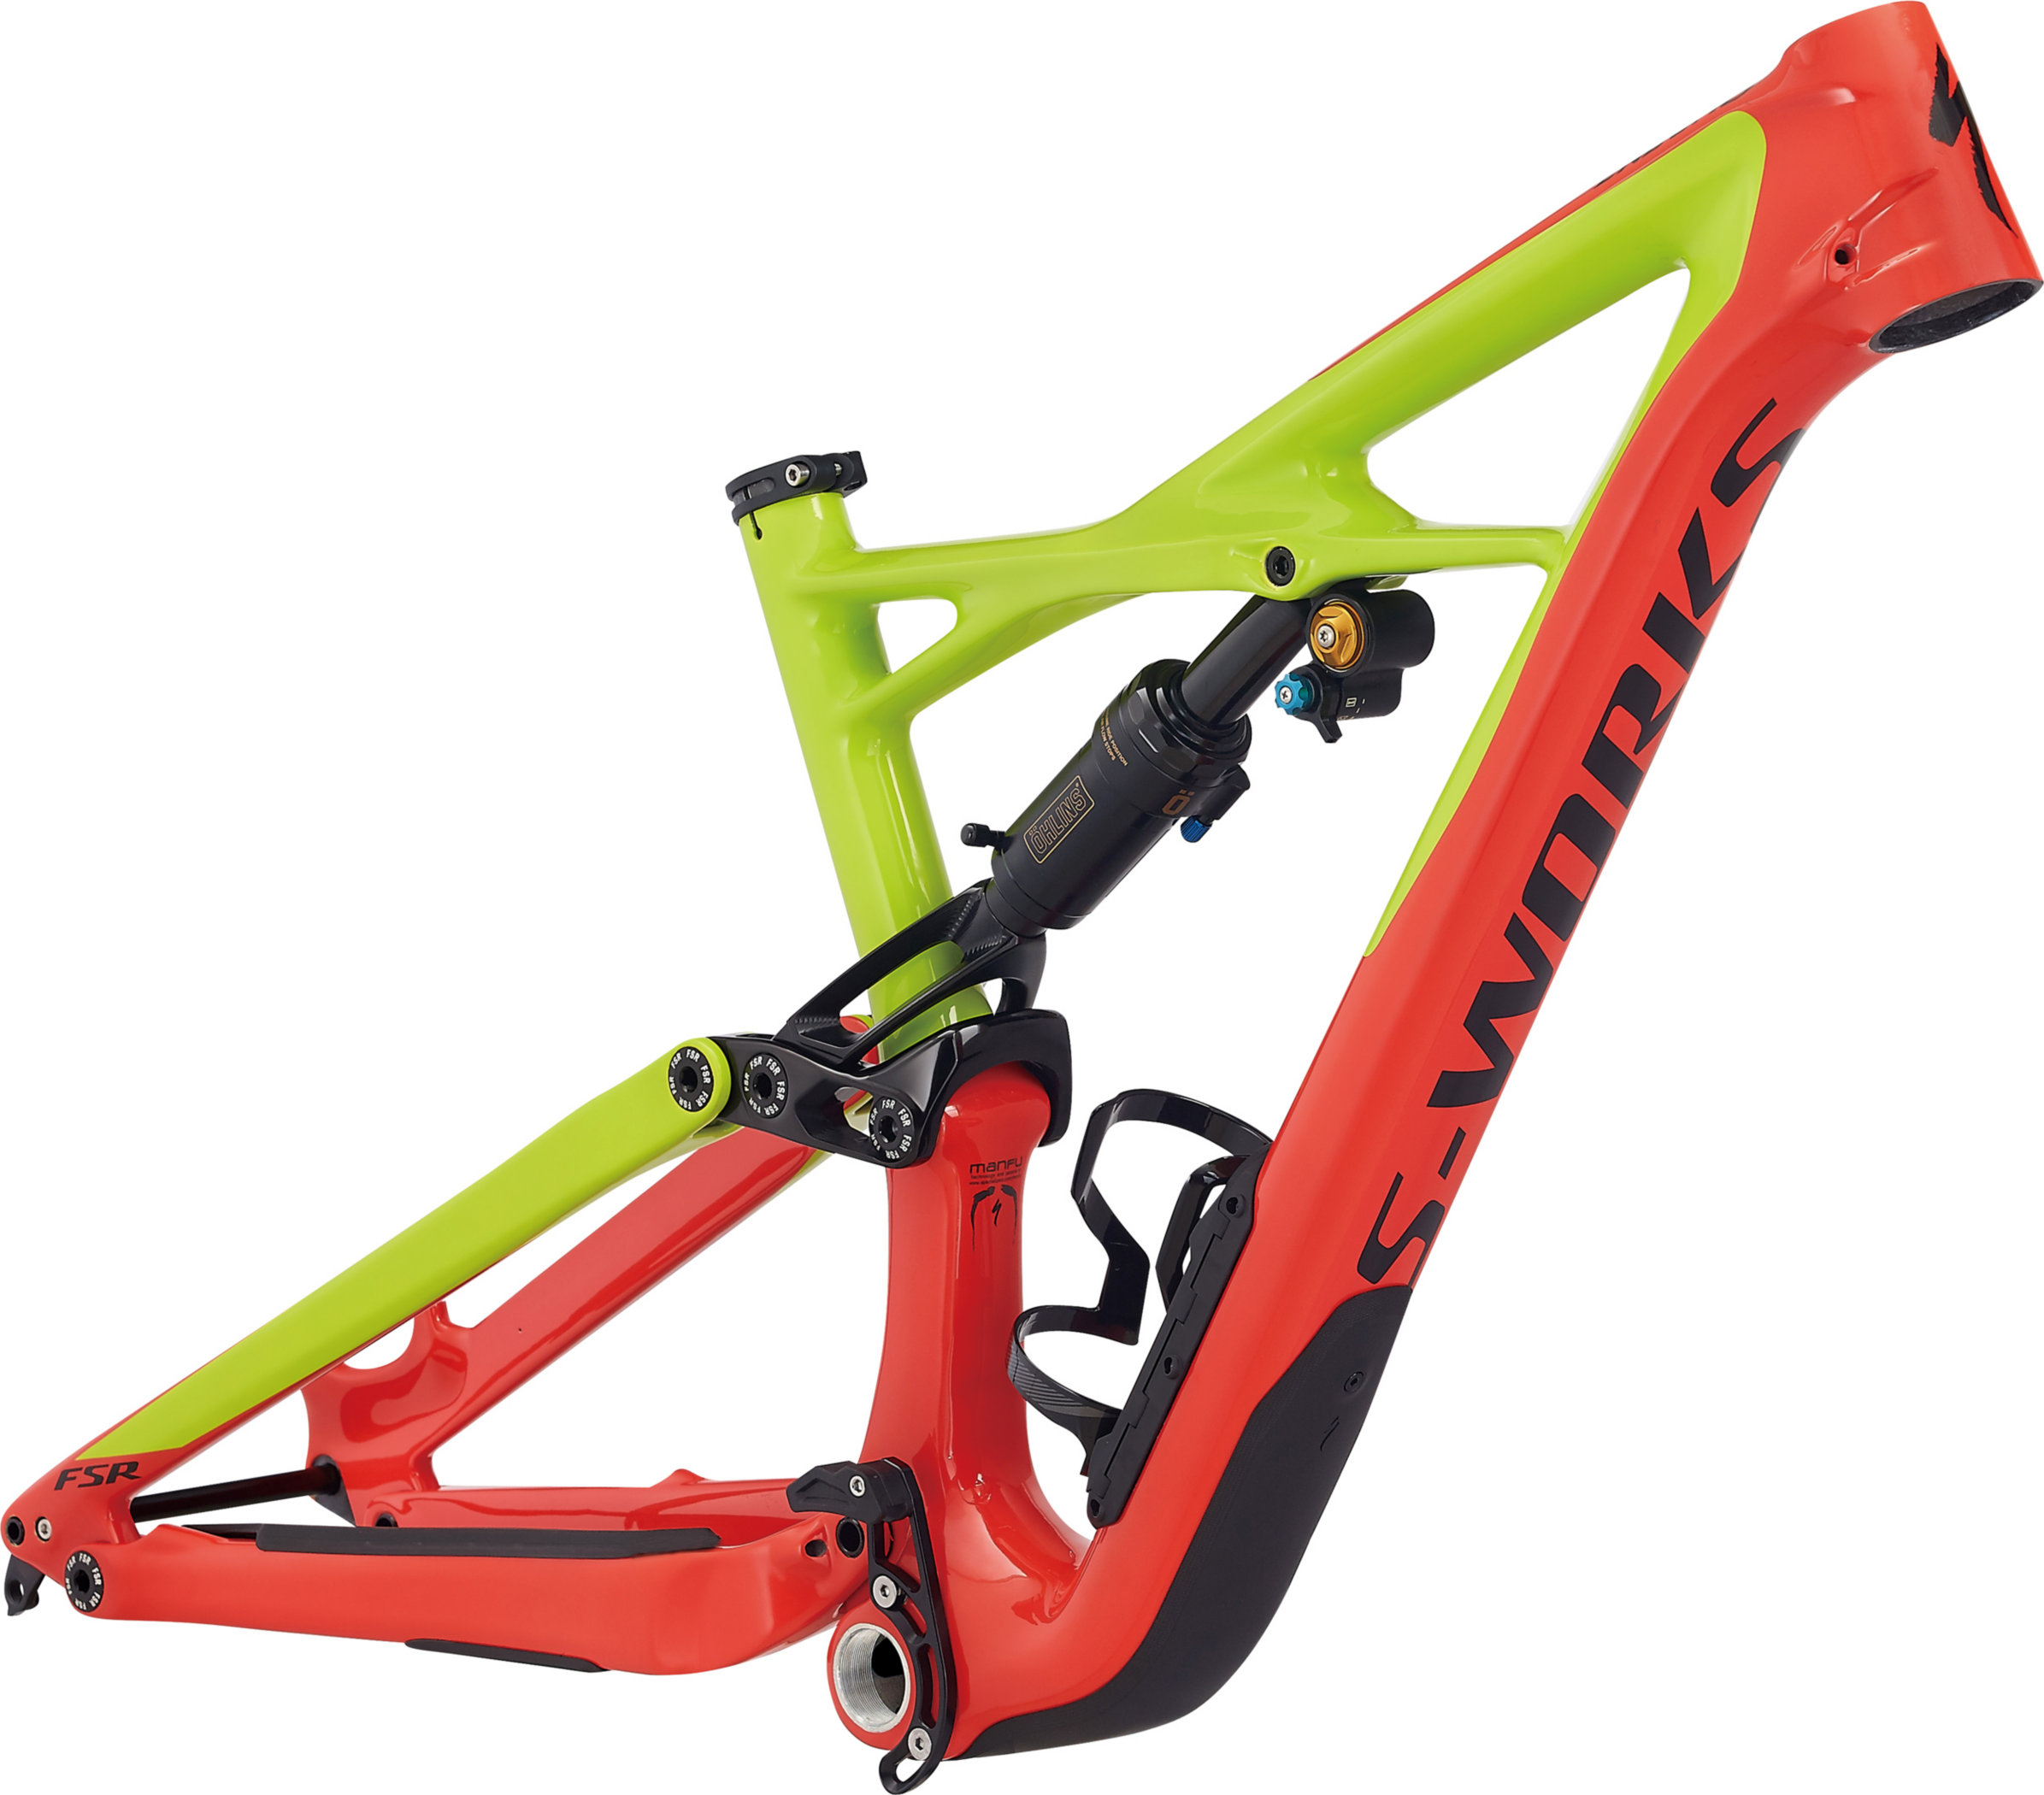 2017 Specialized S-WORKS ENDURO 650B FRAME - Specialized Concept Store 123a07839